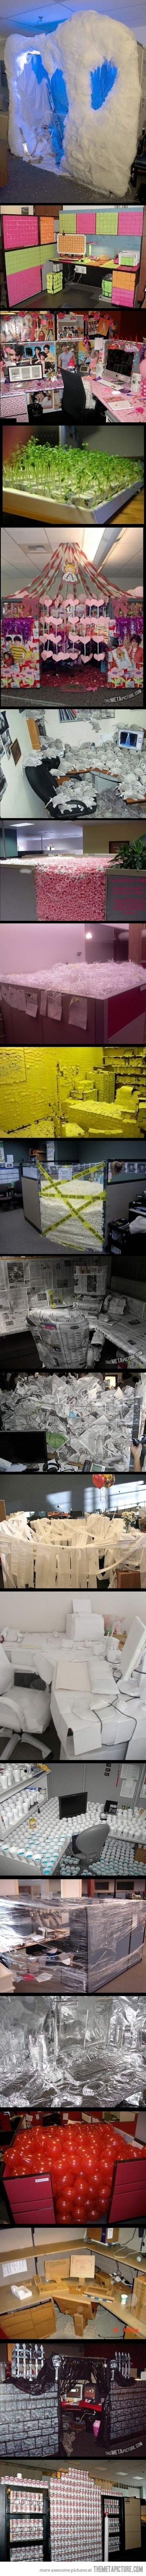 A collection of cubical pranks